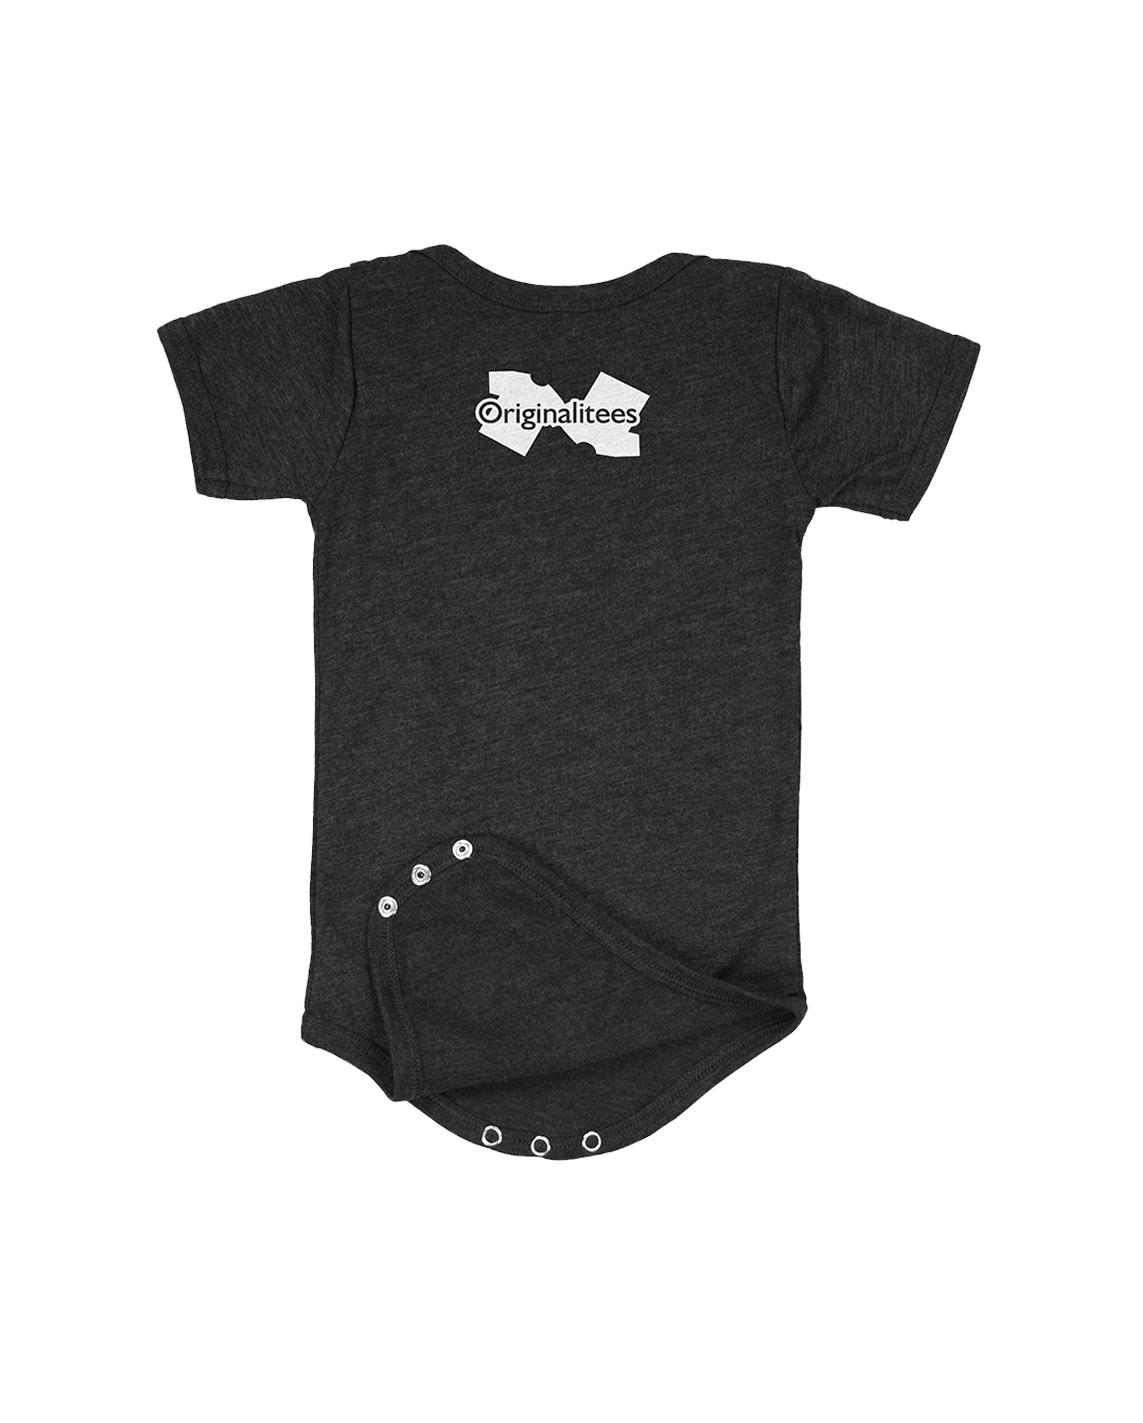 Future Product of Cincinnati Public Schools Short Sleeve Onesie - Charcoal Black - Originalitees